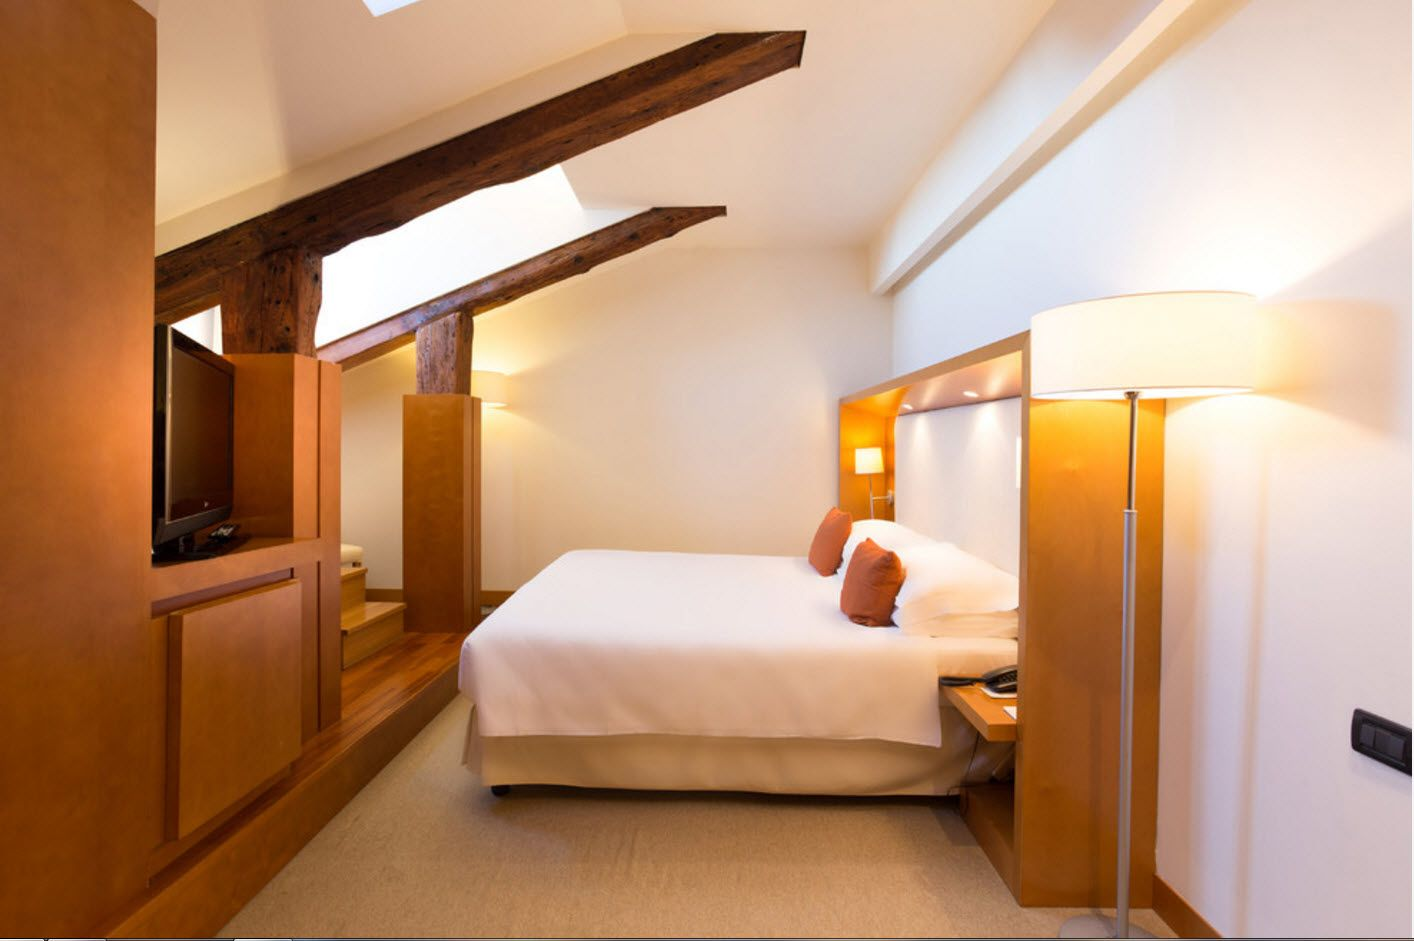 Small masterstroke design in the loft bedroom with wooden surfaces